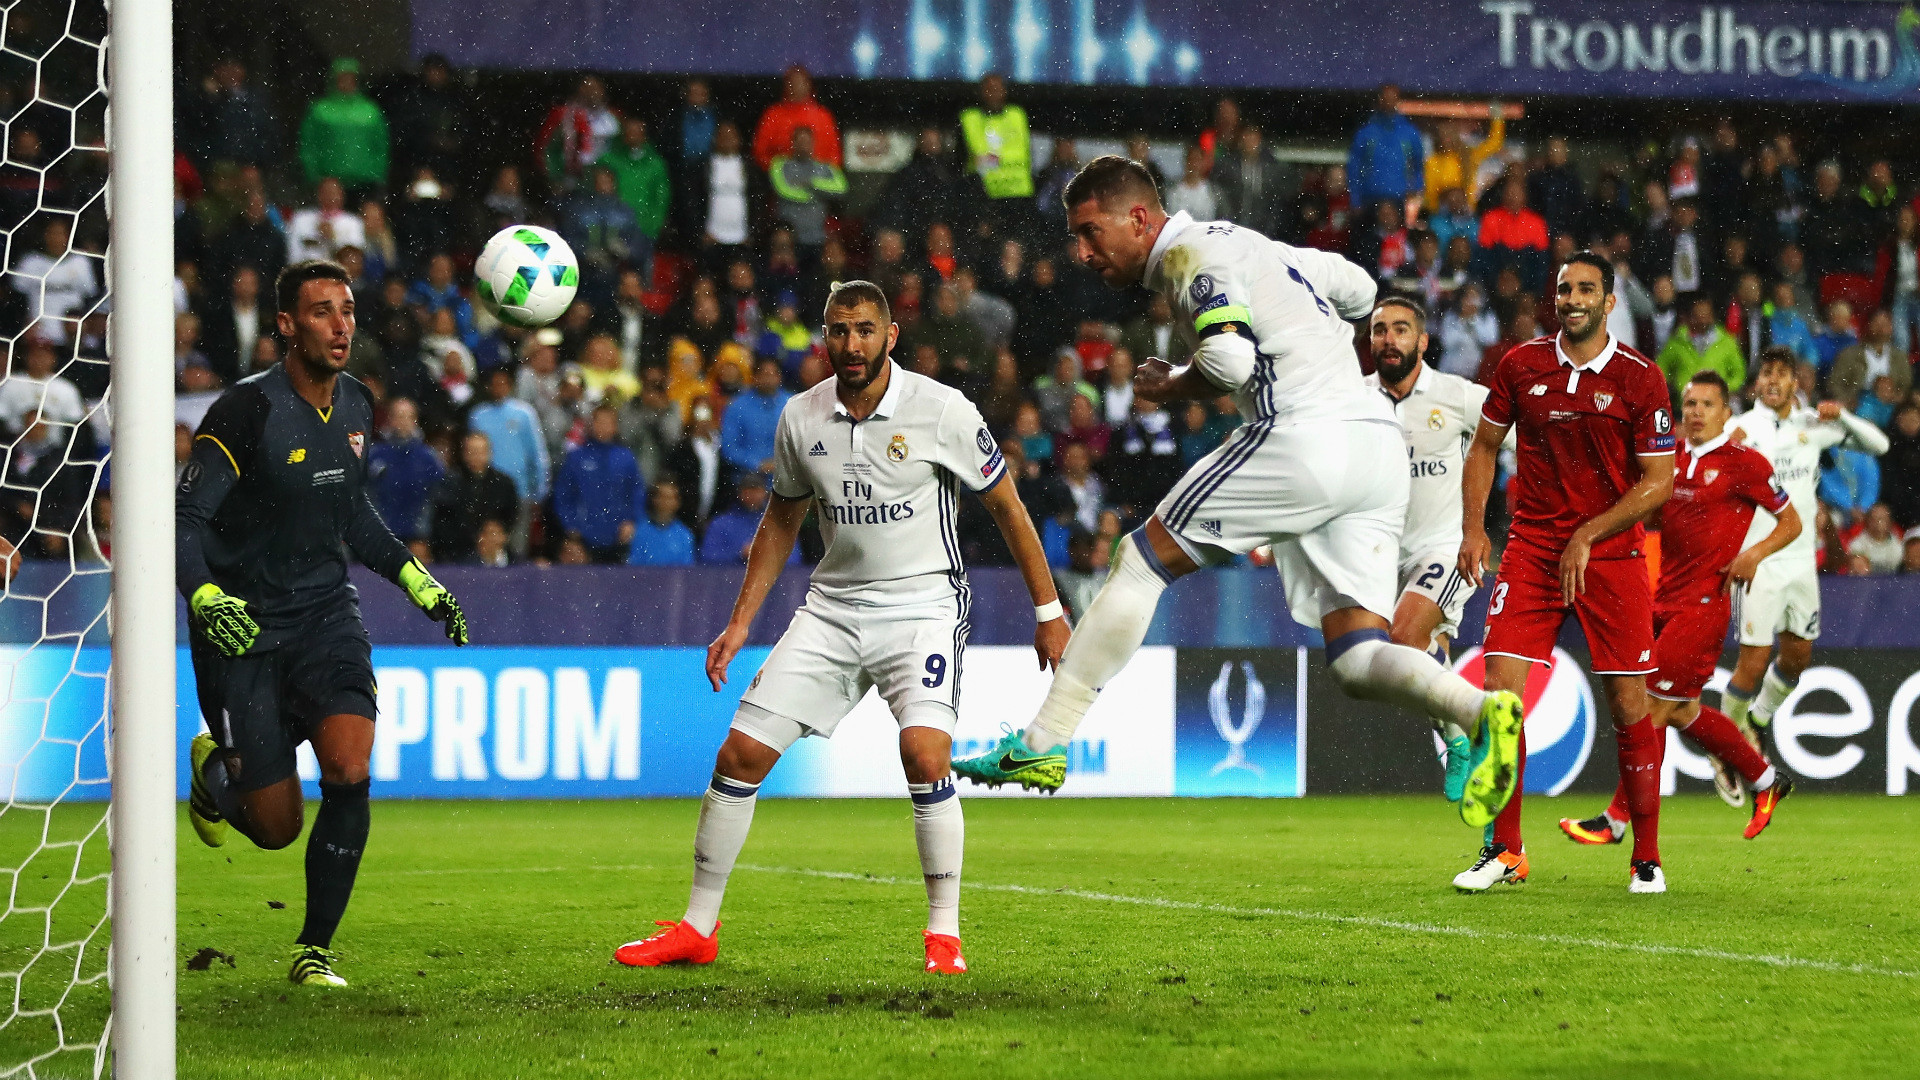 1920x1080 From 92:48 to 92:34 - Sergio Ramos is always there when it matters most for  Real Madrid